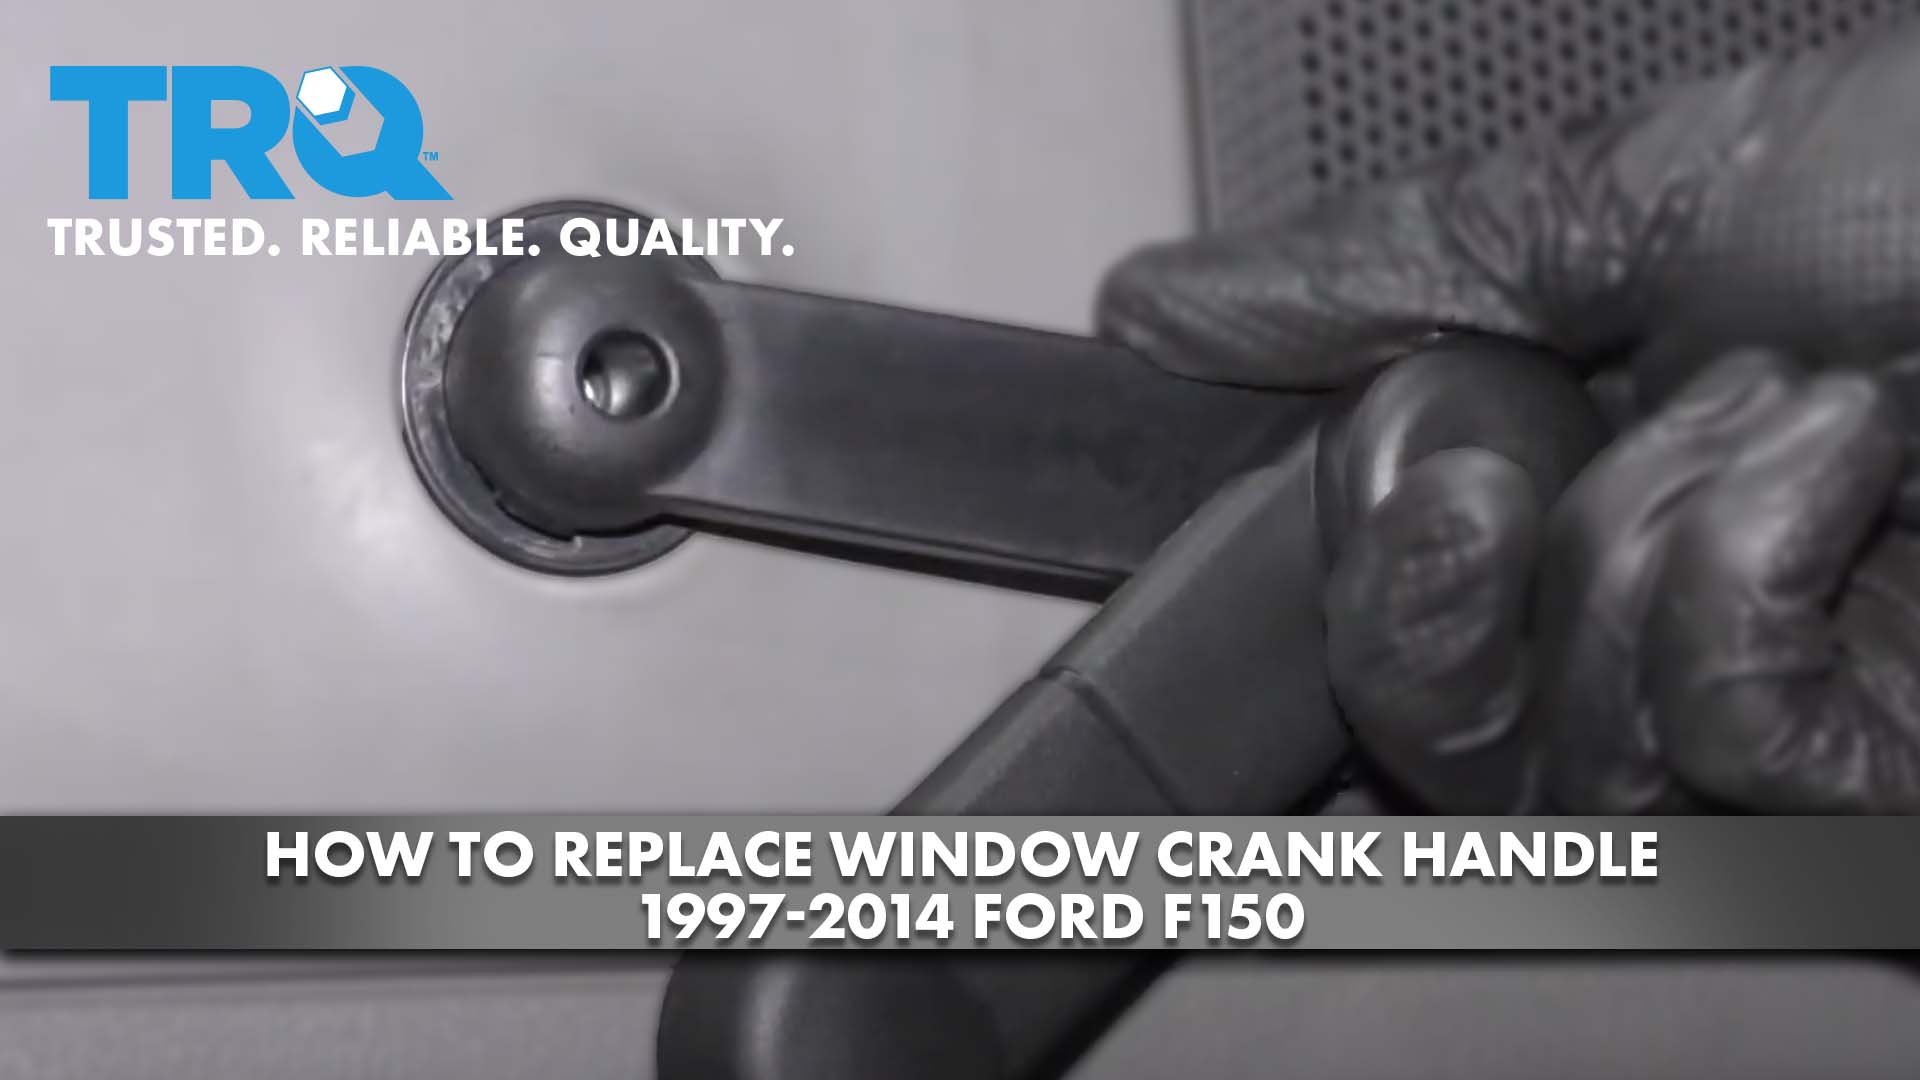 How to Replace Window Crank Handle 1997-2014 Ford F150